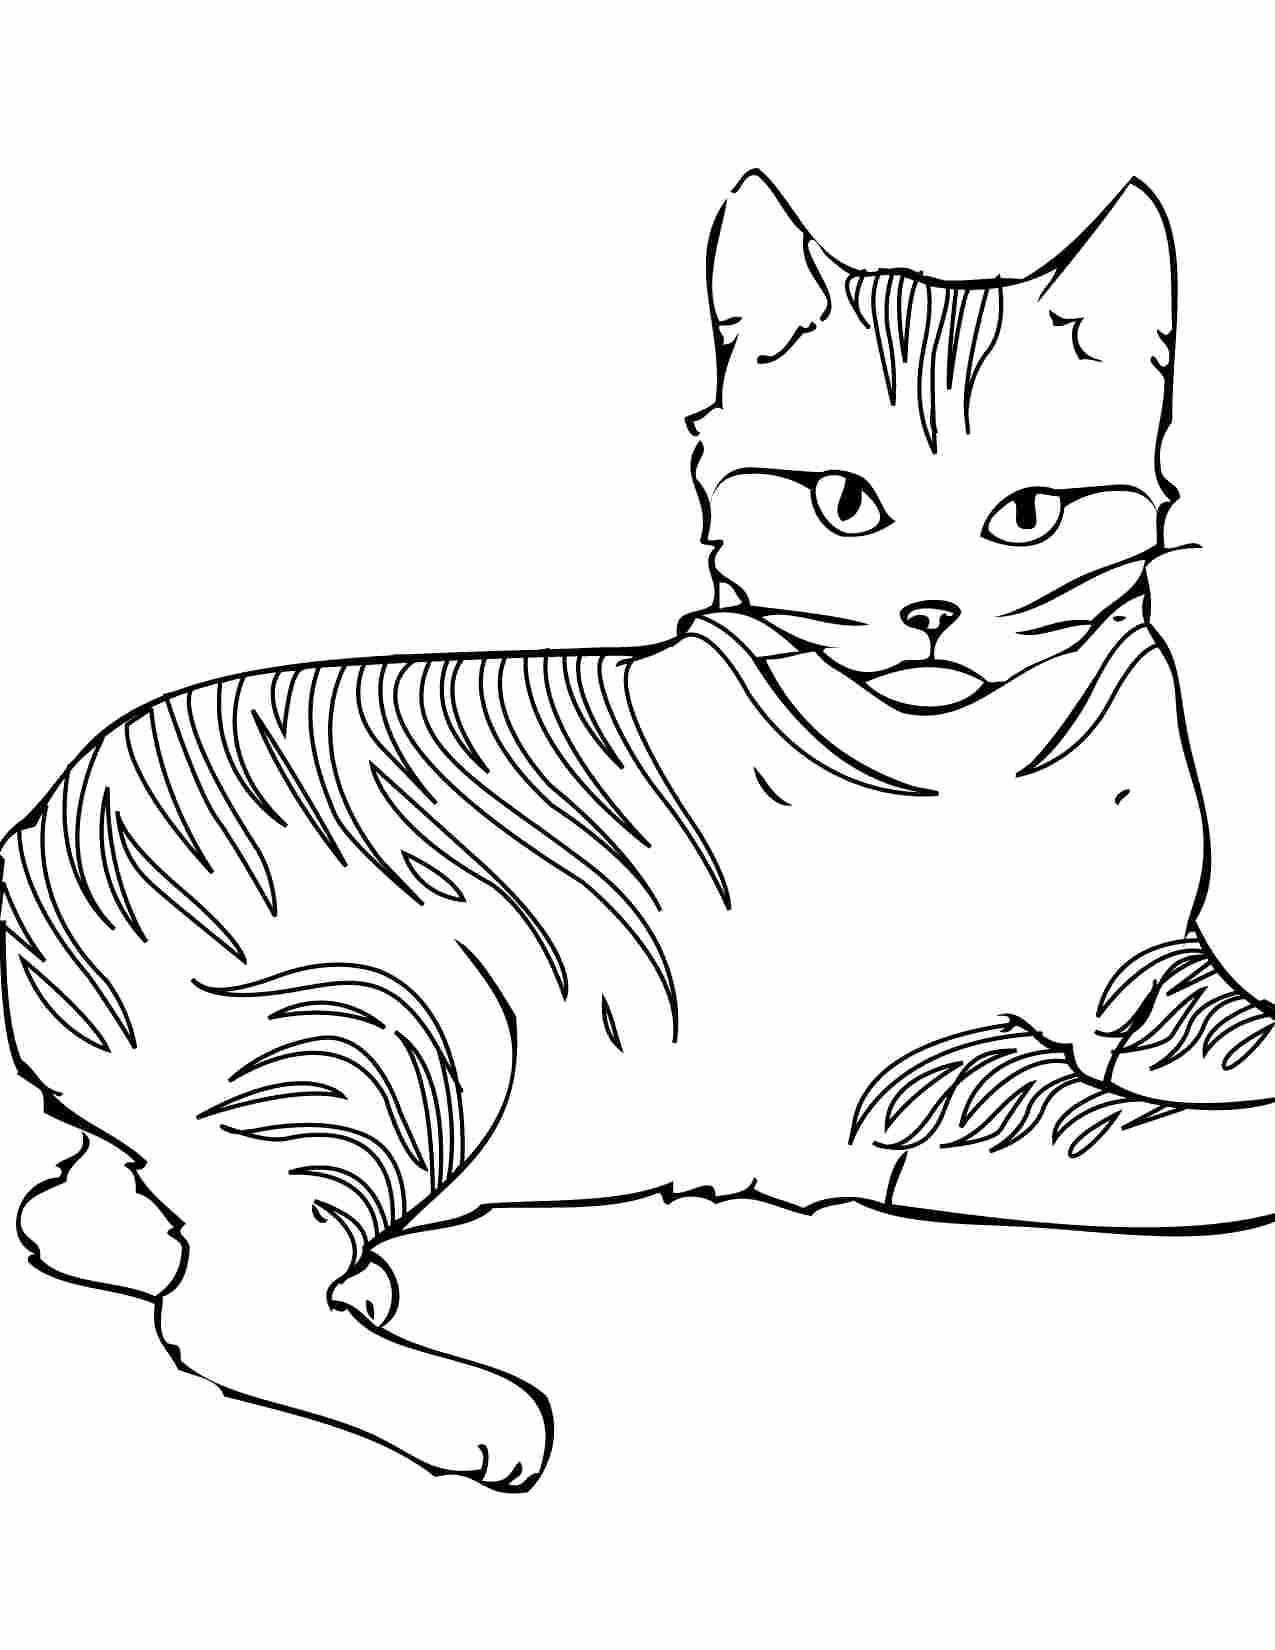 Coloring Pages For Kids Cat In 2020 Cat Coloring Page Cat Coloring Book Kittens Coloring